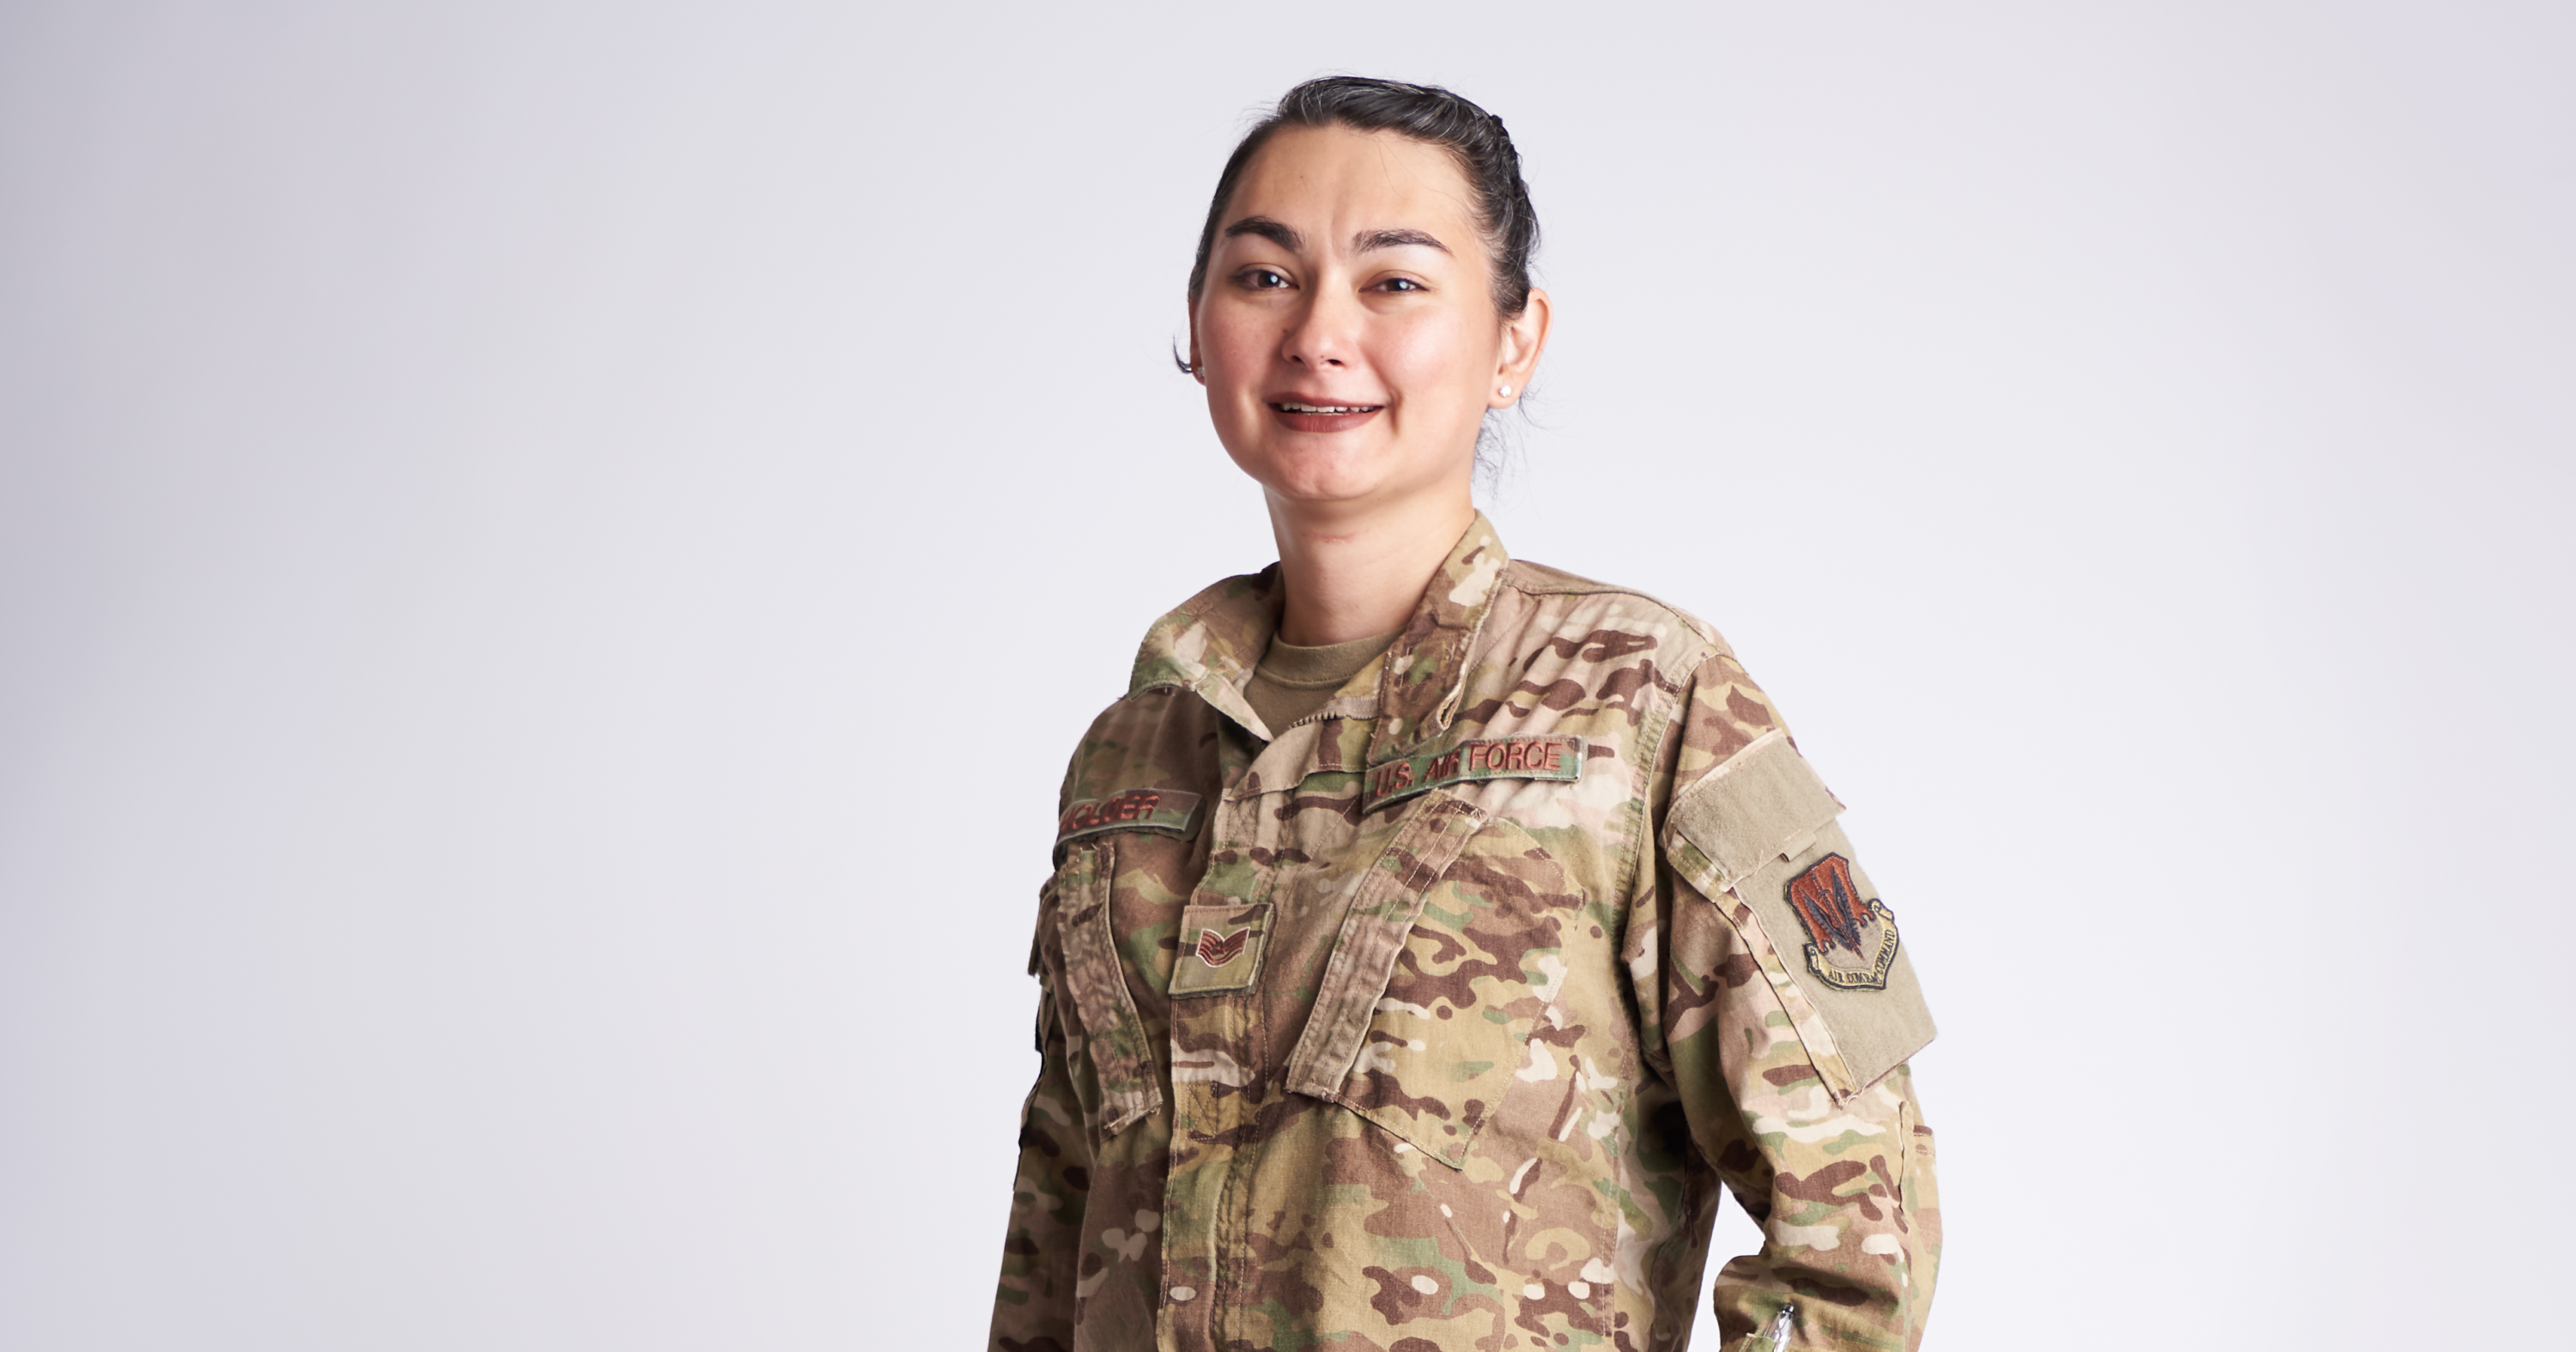 What It's Like to Be Transgender in the Military